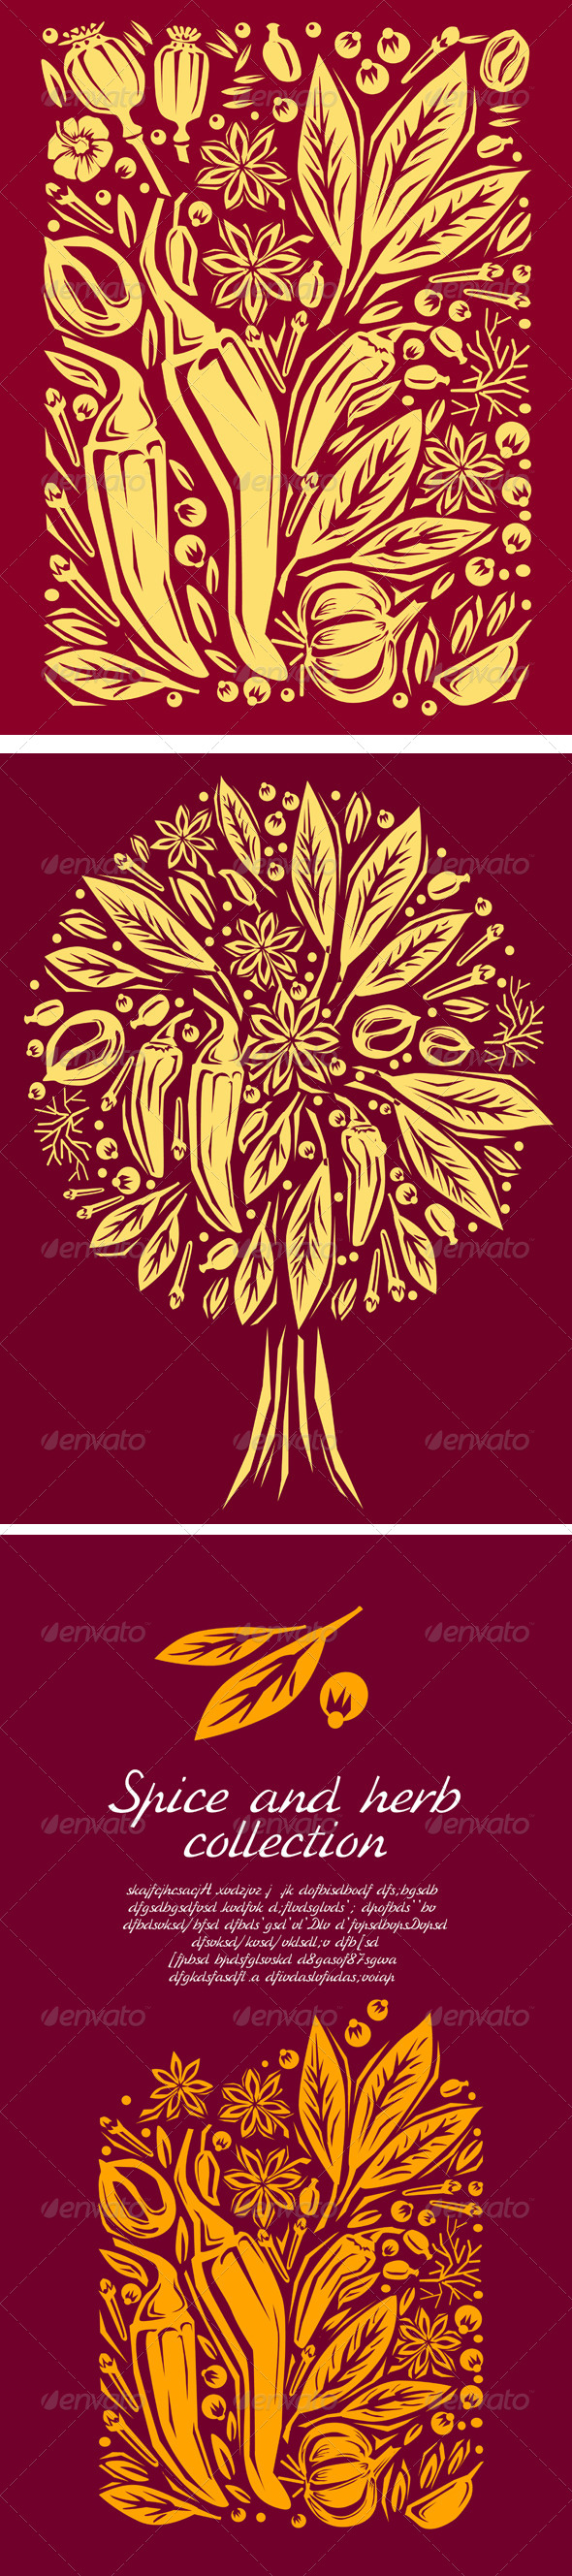 GraphicRiver Woodcut Style Illustration of Spices 6432354